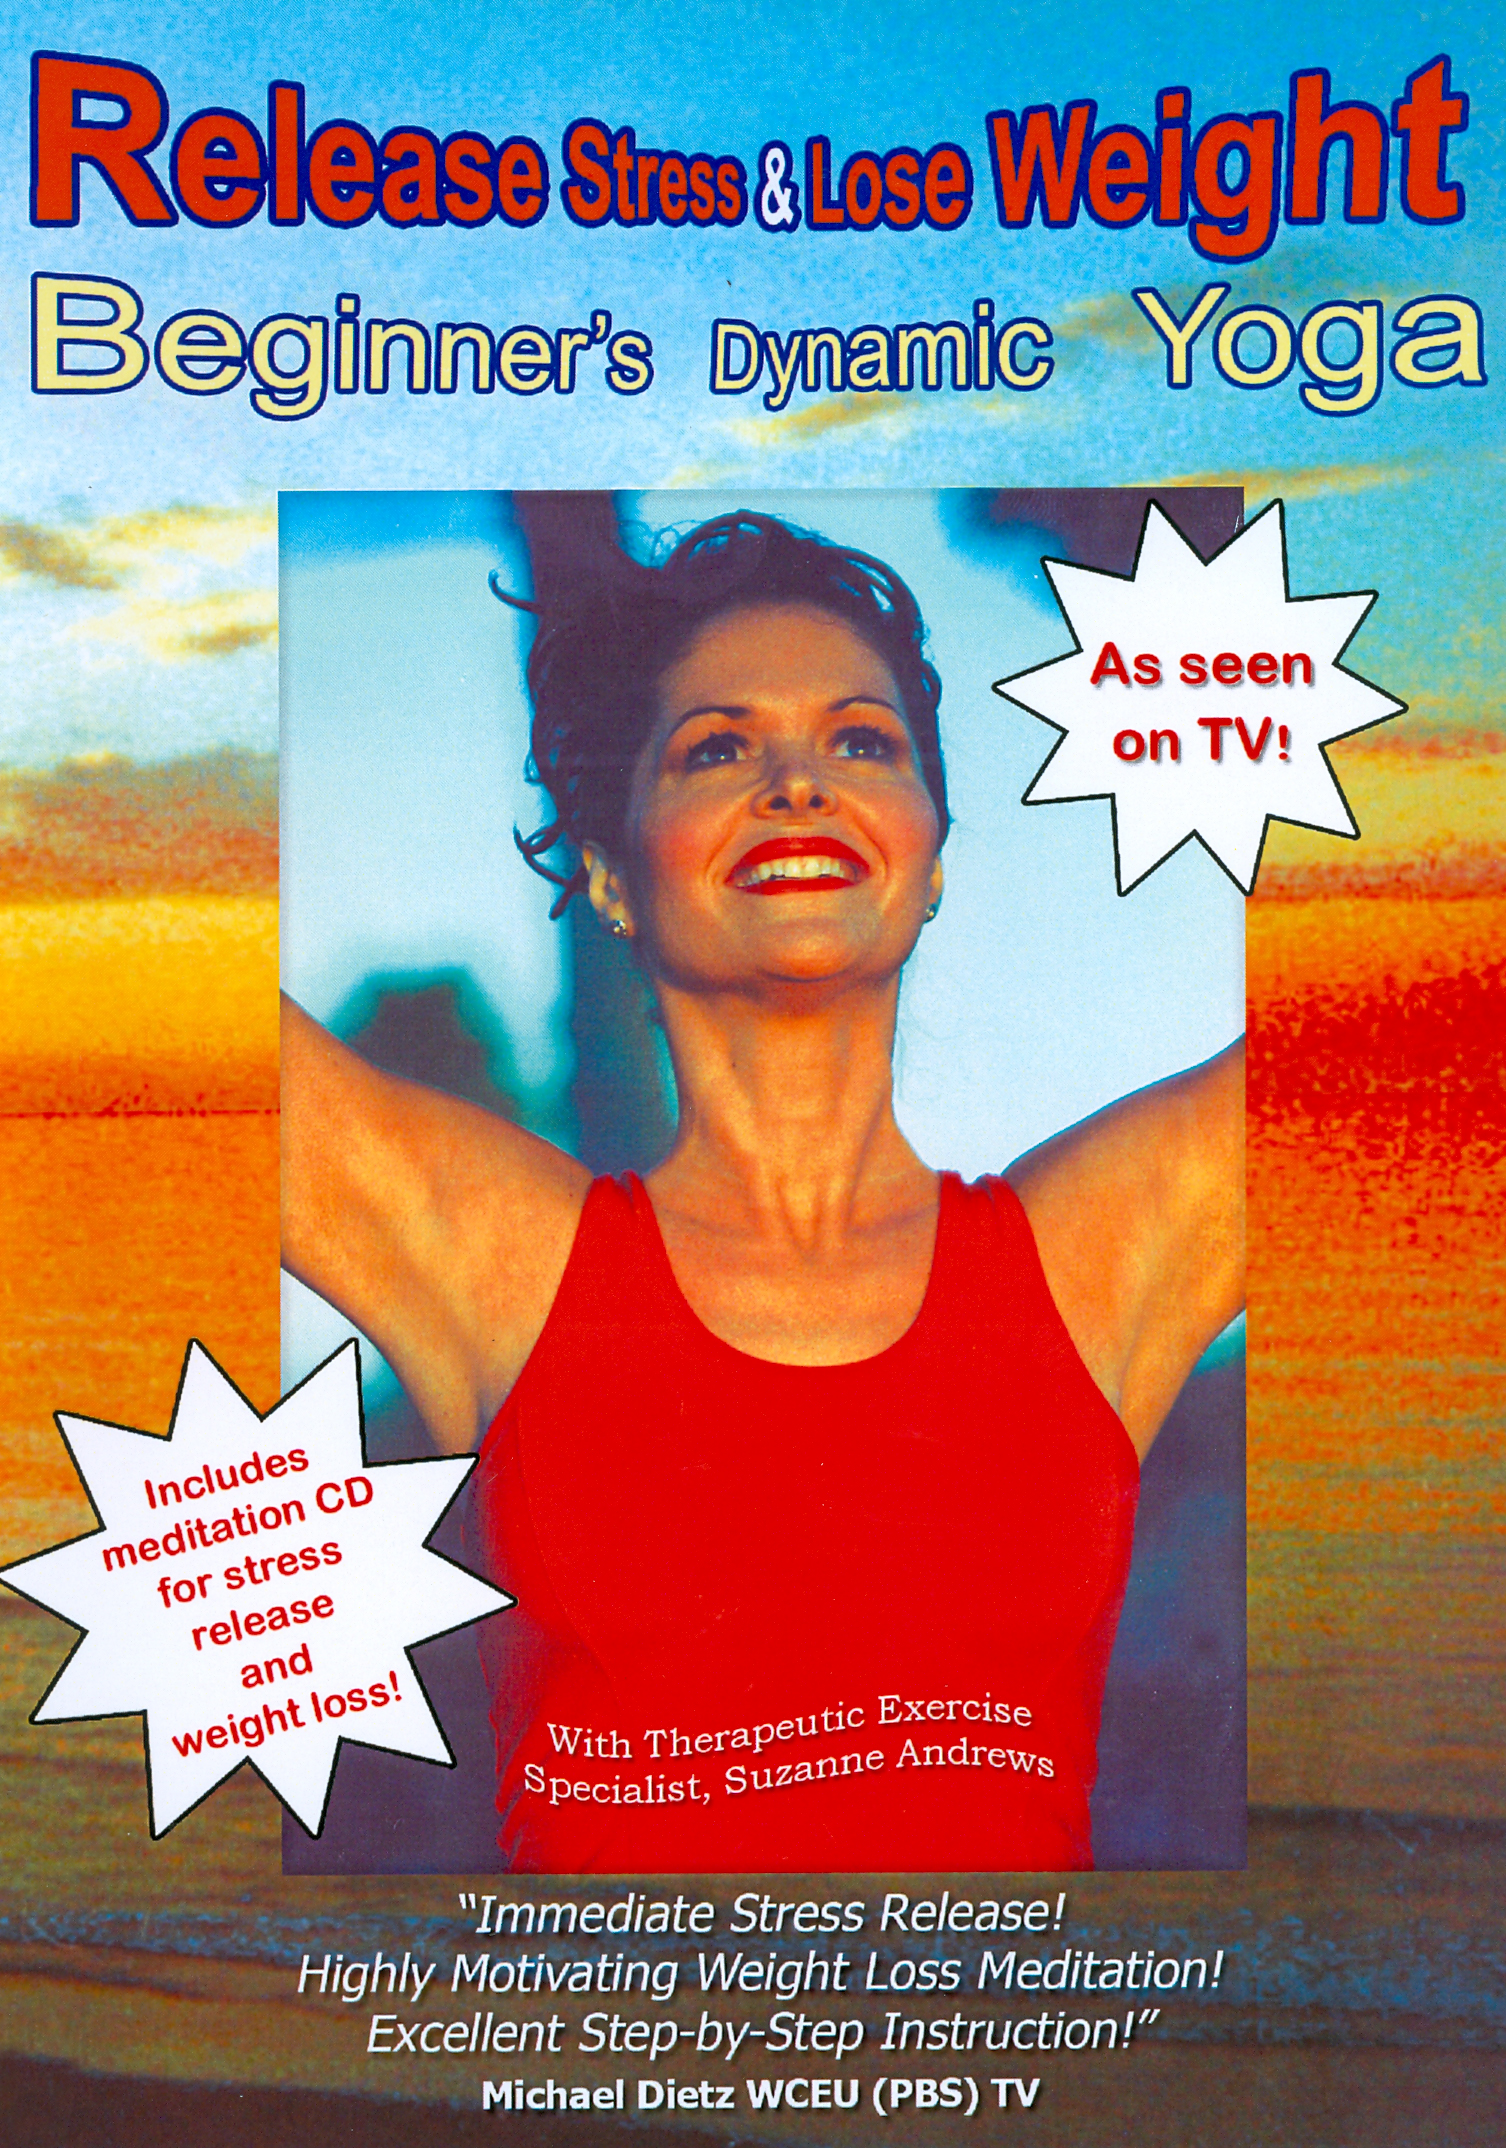 Release Stress & Lose Weight: Beginner's Dynamic Yoga